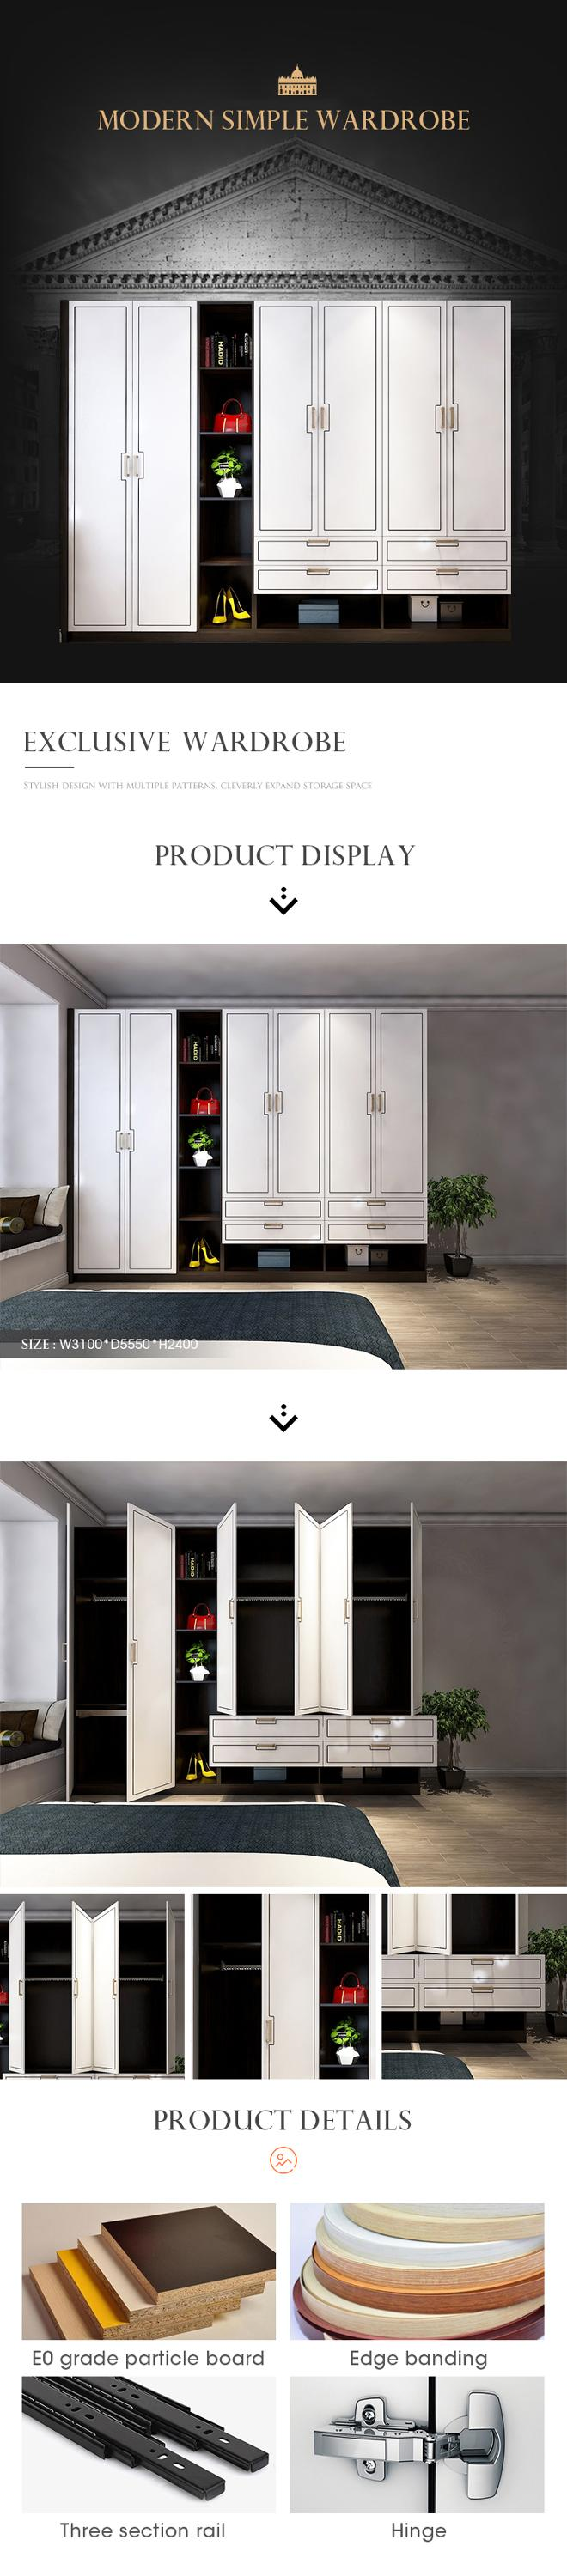 Foshan E0 Panel Bedroom Wall Wardrobe Design